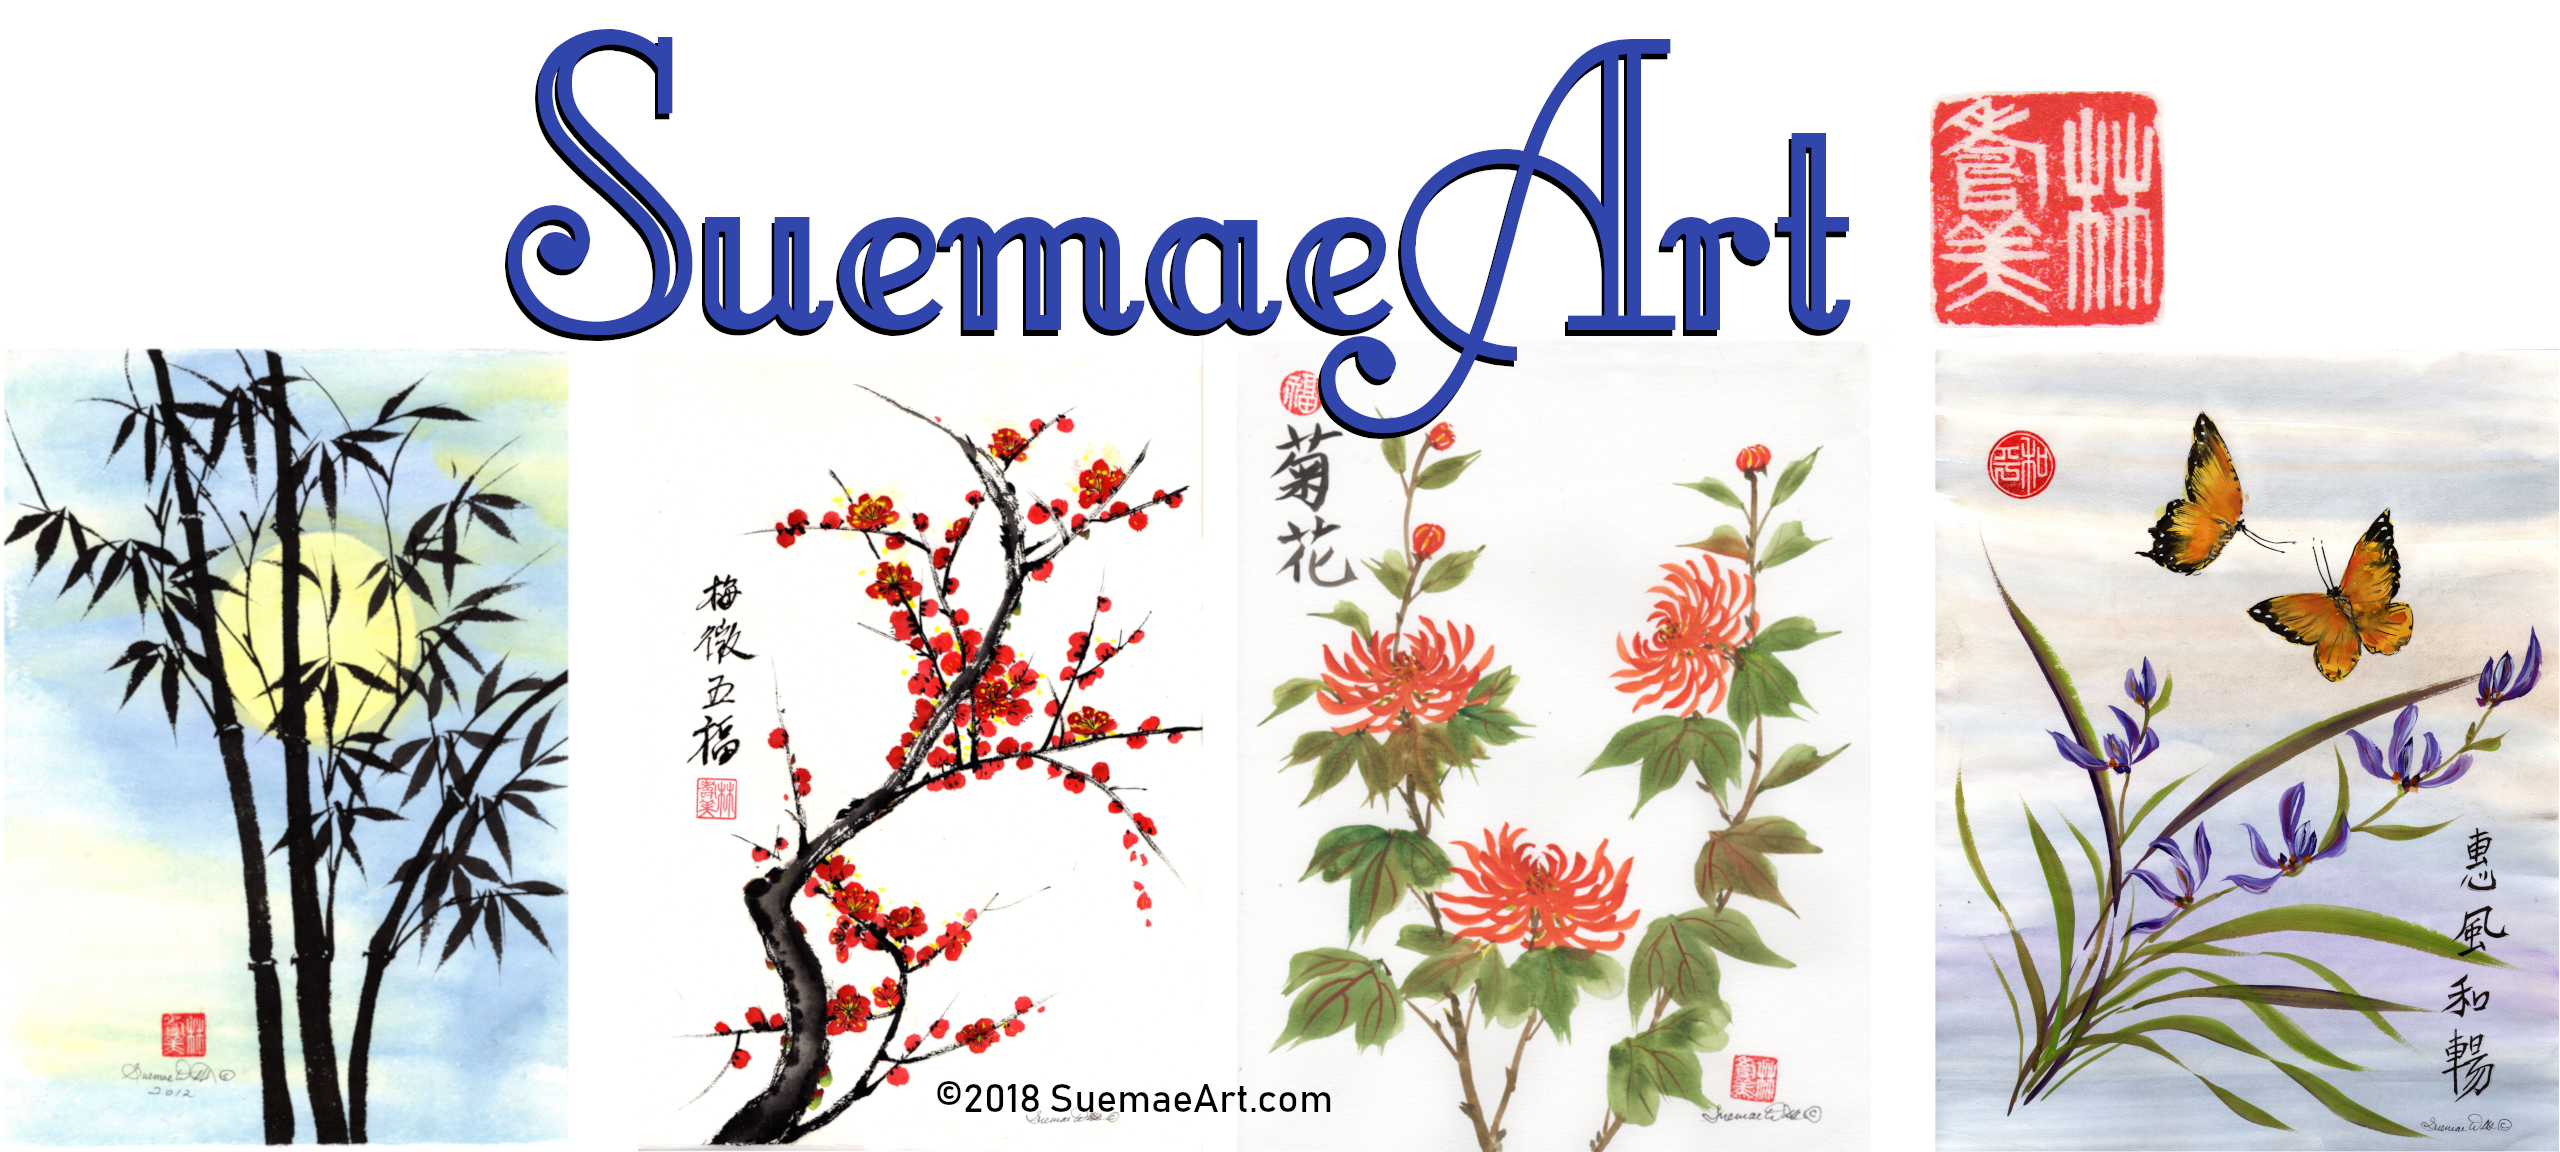 SuemaeArt channel art for WordPress